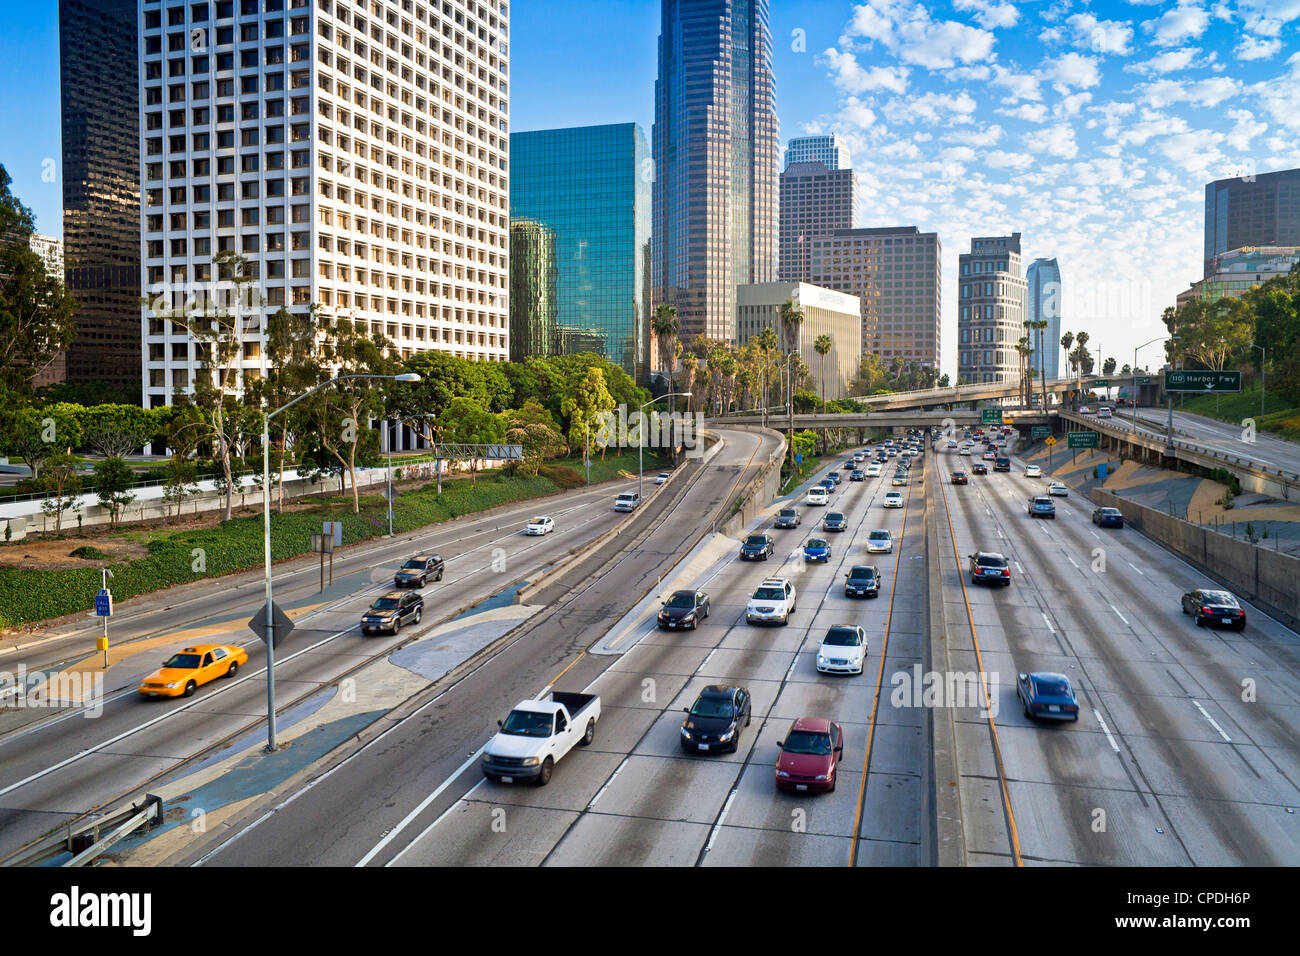 The 110 Harbour Freeway and Downtown Los Angeles skyline, California, United States of America, North America - Stock Image